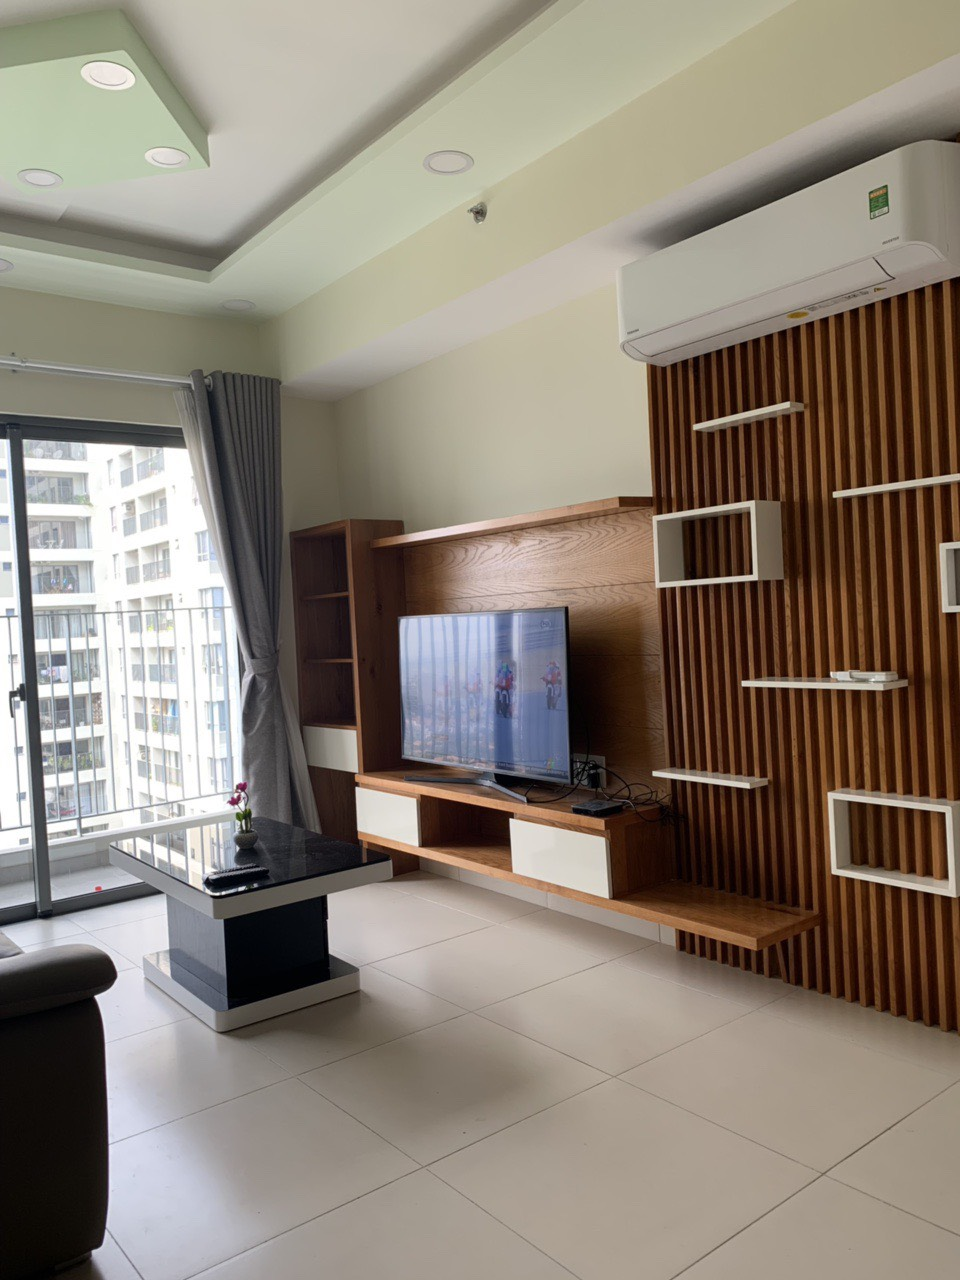 Apartment for rent D2142628 (14)